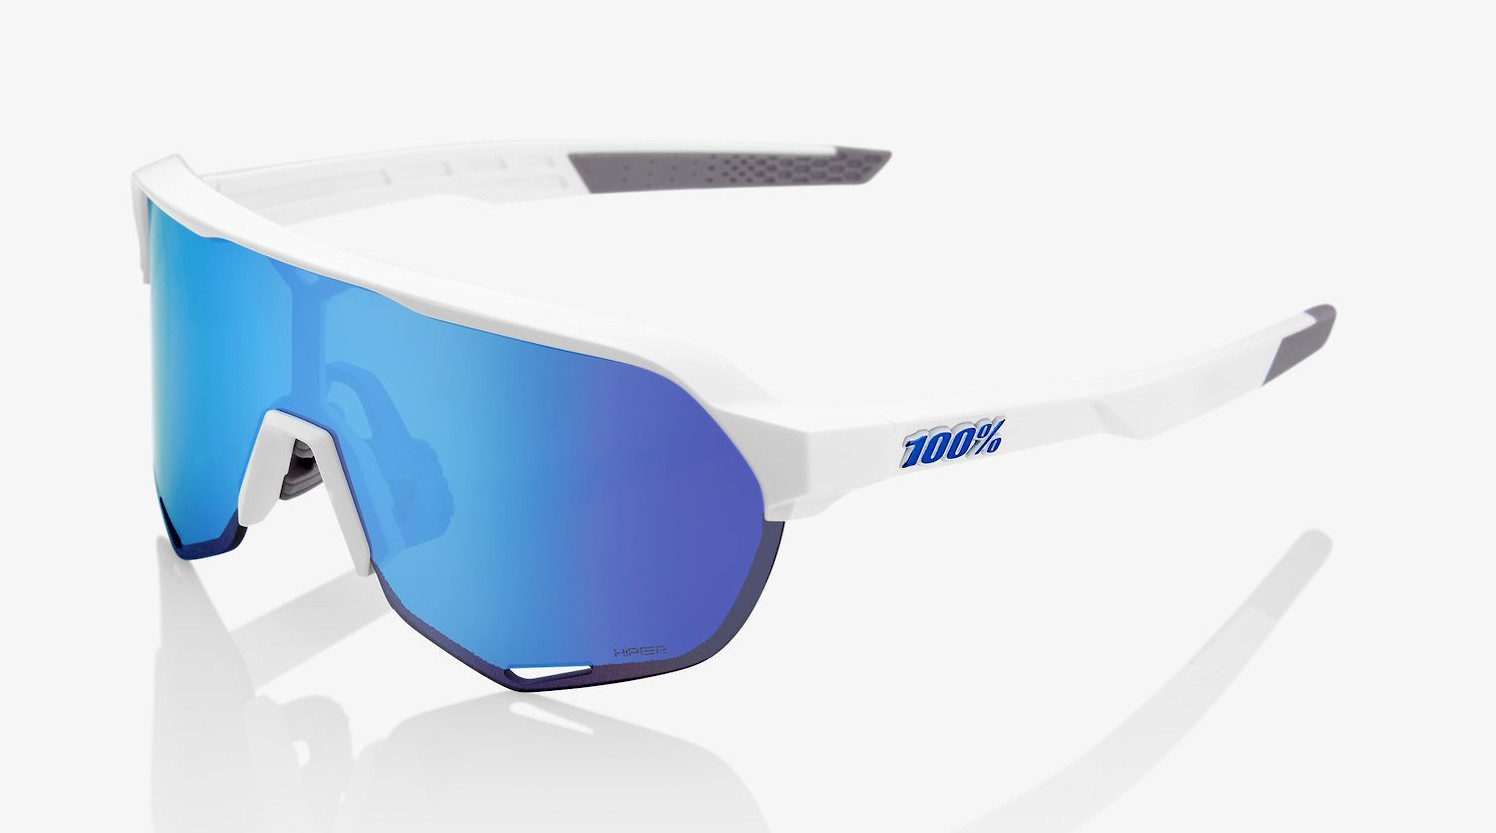 100/% S2 Sunglasses Tact Off White HiPER Red Mirror